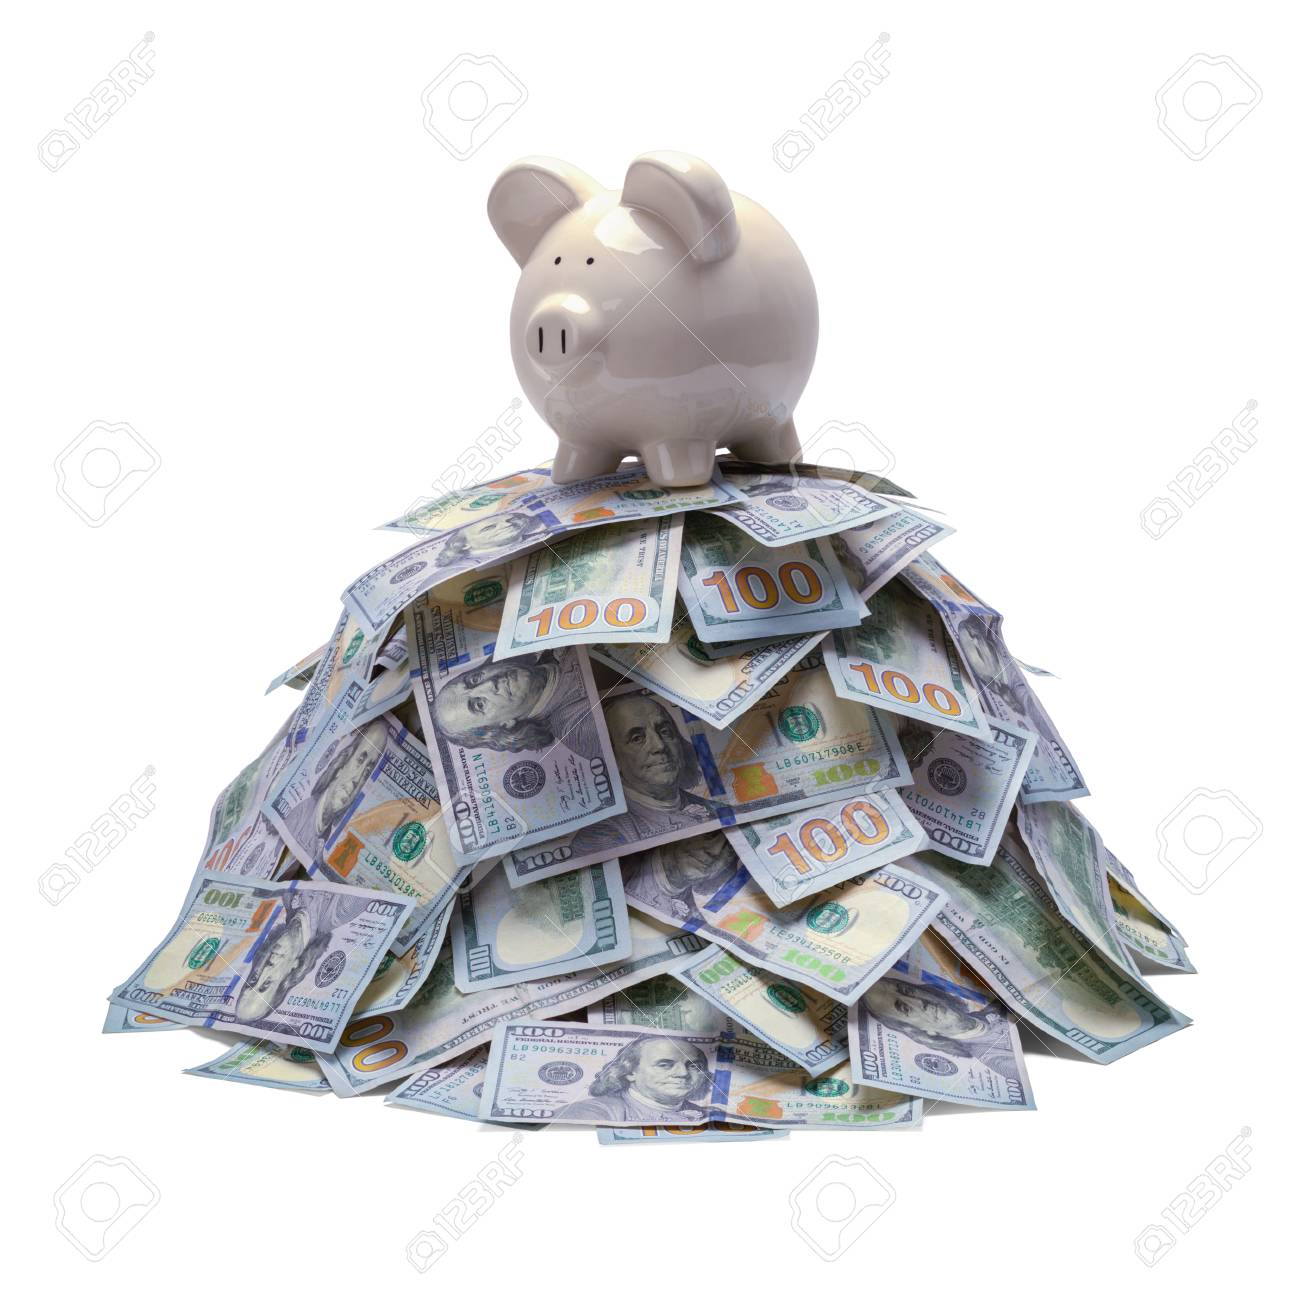 Pile of Money with Piggy Bank on Top Isolated on White. - 104651922